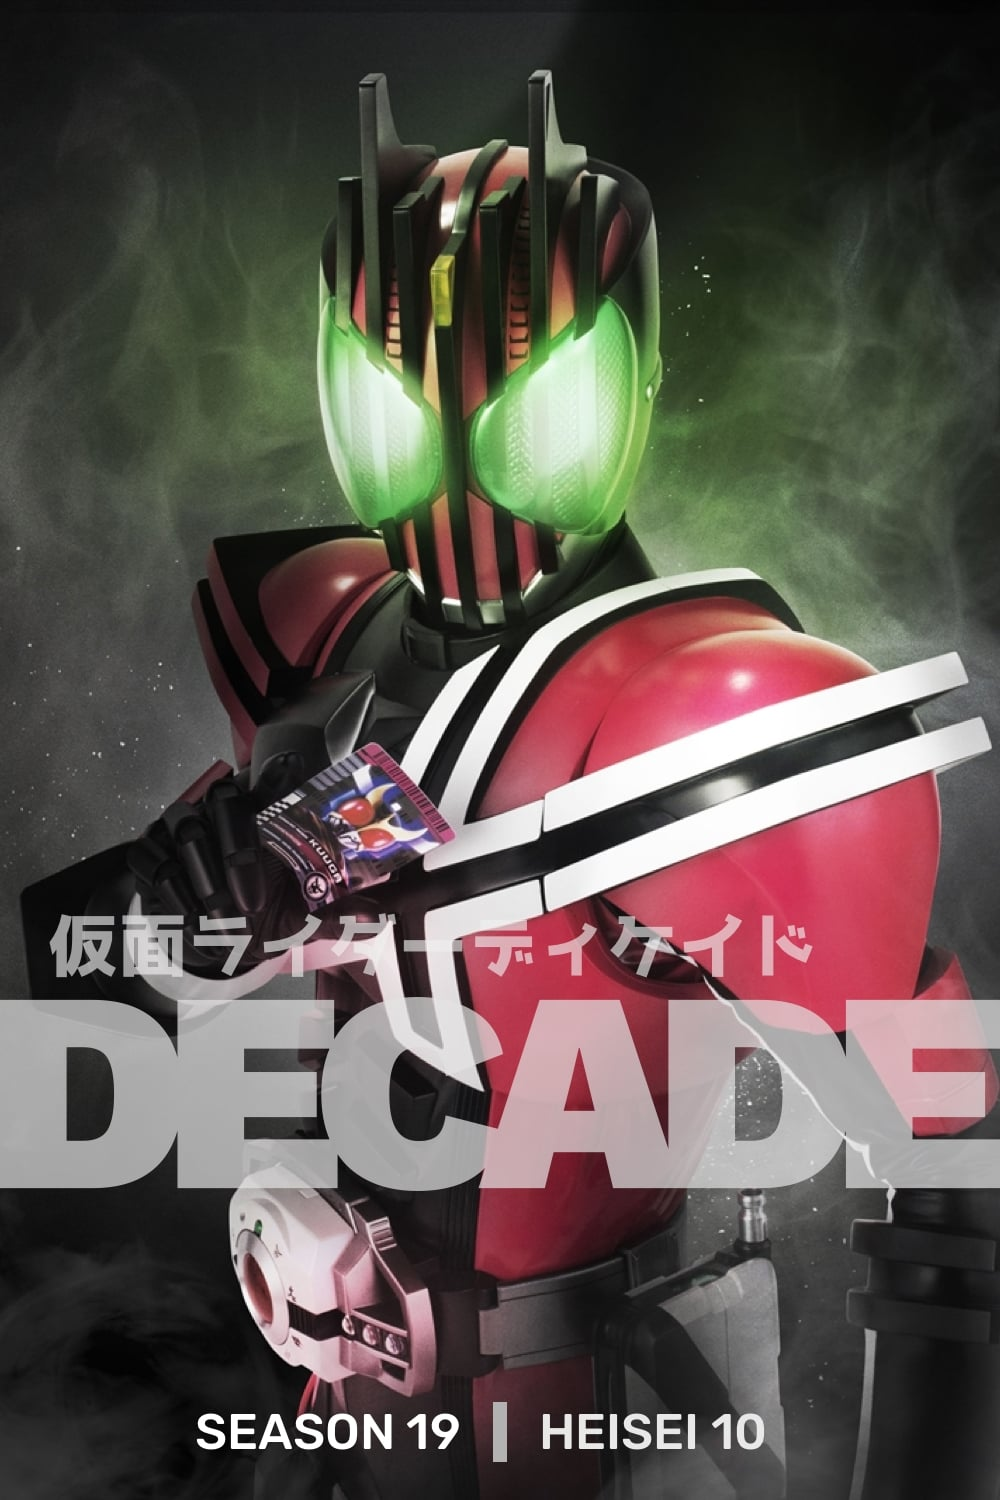 Kamen Rider - Season 21 Episode 42 : Ice, Greeed Form, Broken Wings Season 19